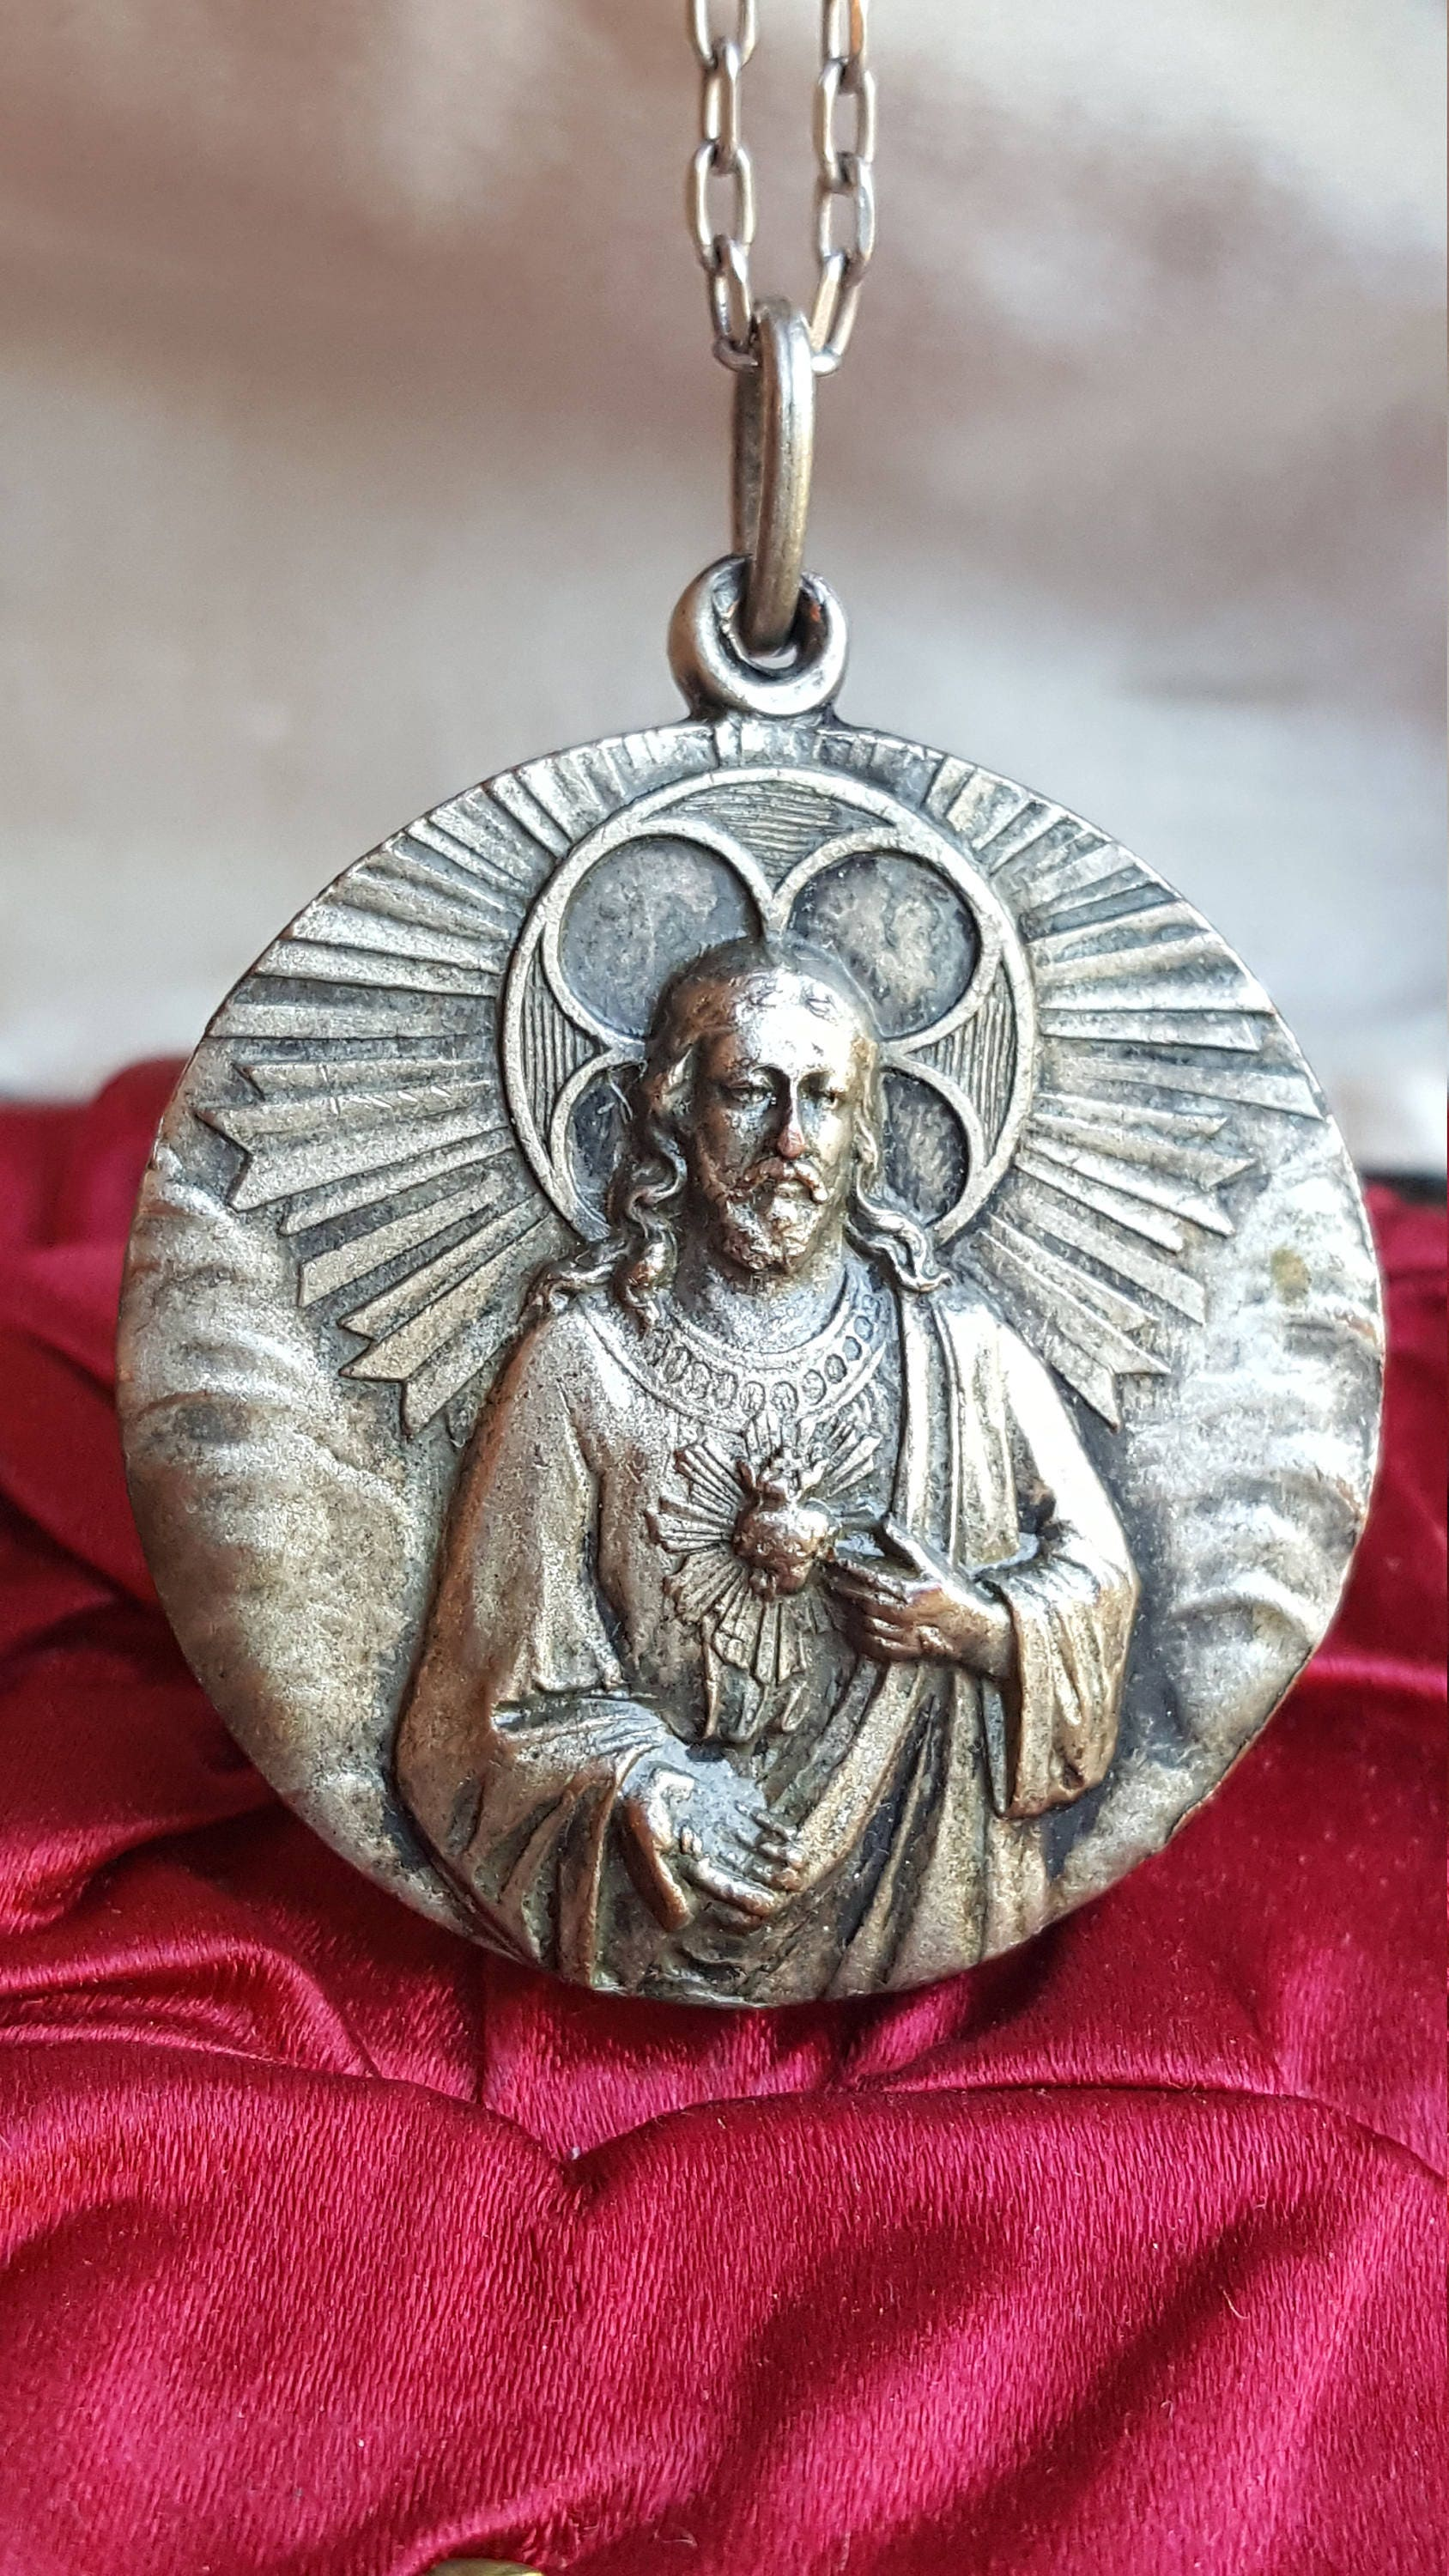 item pendant medal shape protect protection wholesale jewelry st charms christopher accessories religious my medallion on travel us from necklace catholic saint charm in